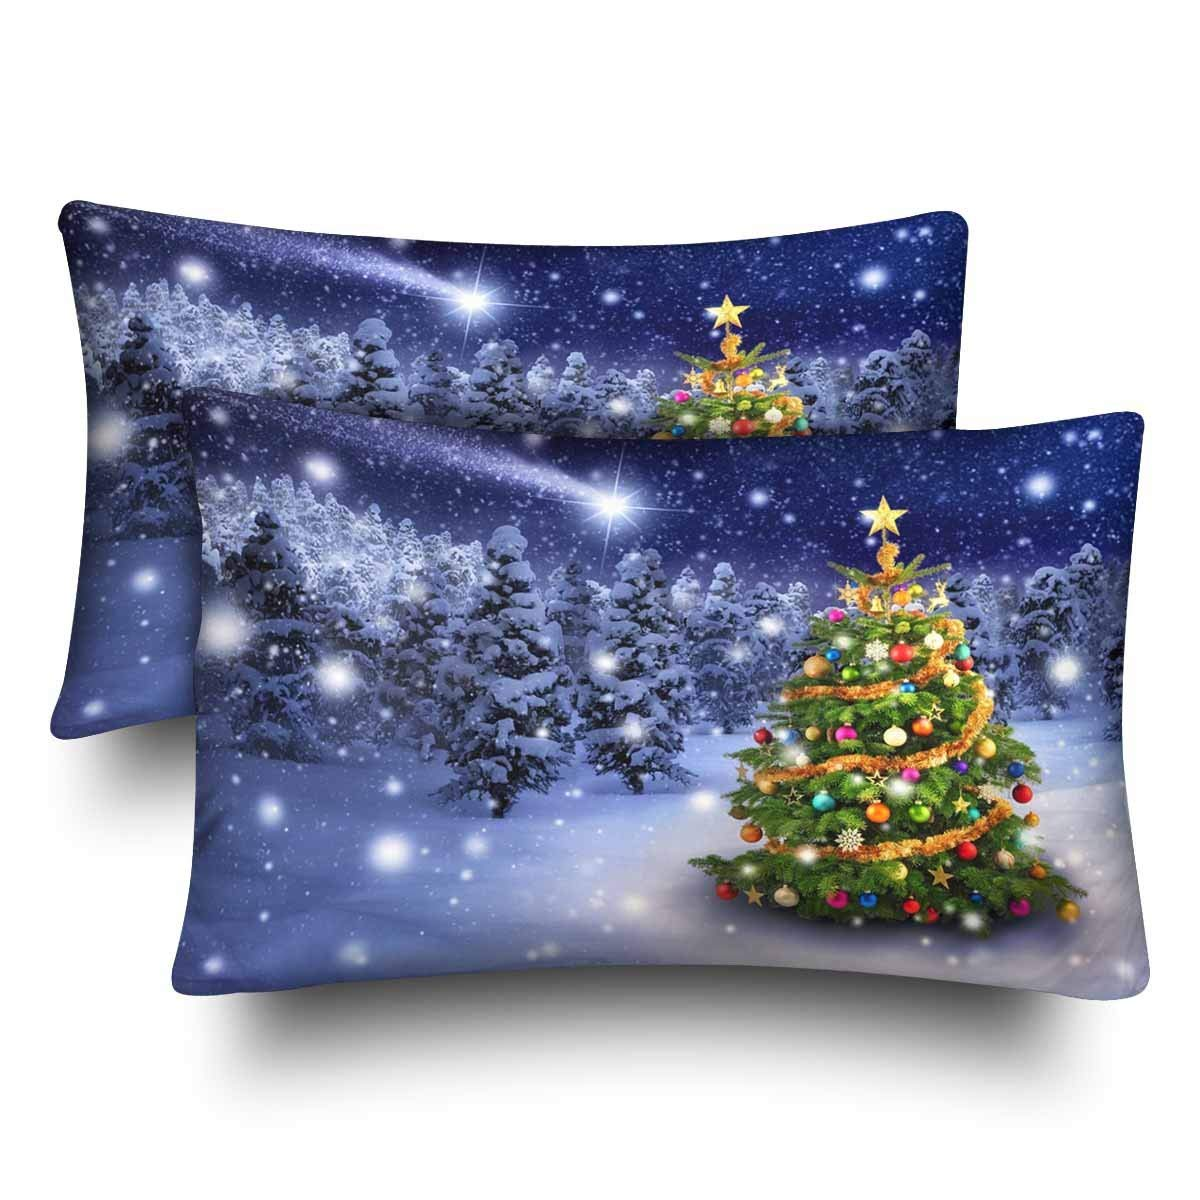 GCKG Christmas Tree Snowy Night Star Christmas Pillow Cases Pillowcase 20x30 inches Set of 2 - image 4 de 4